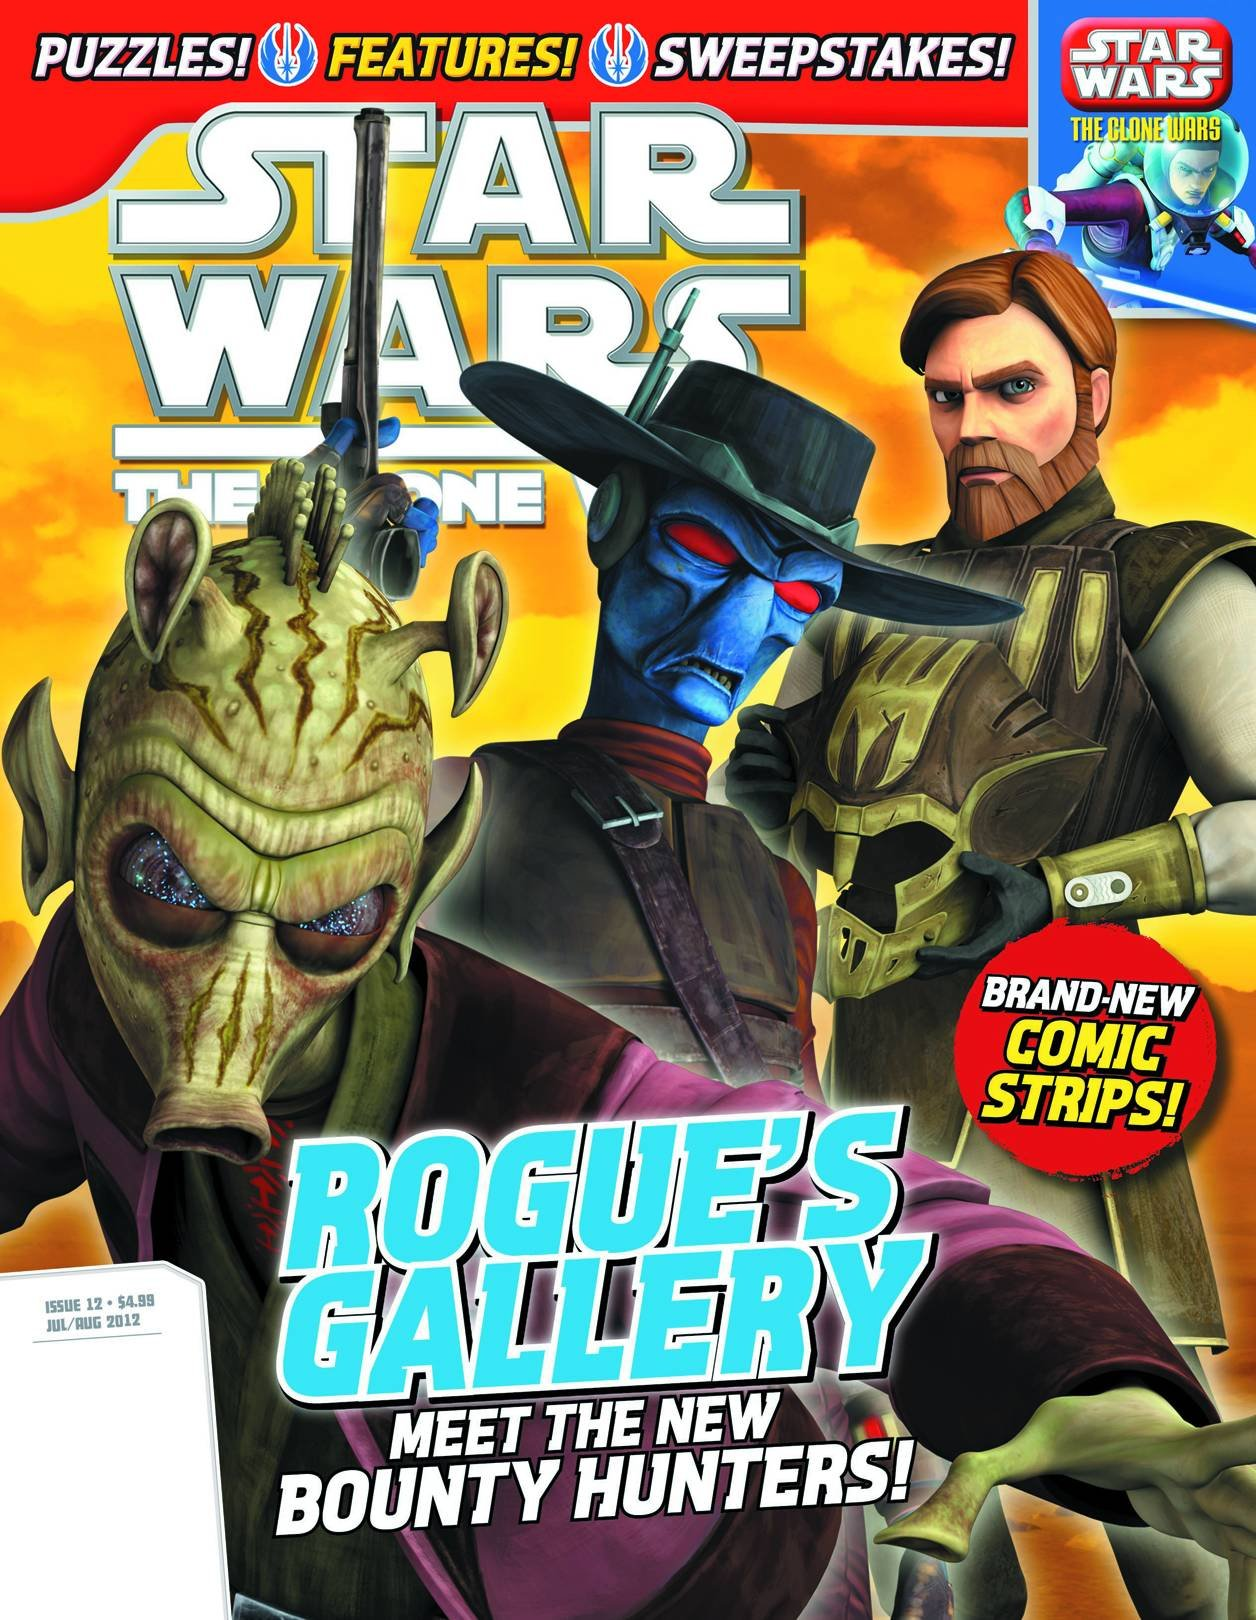 Star Wars The Clone Wars Magazine 12